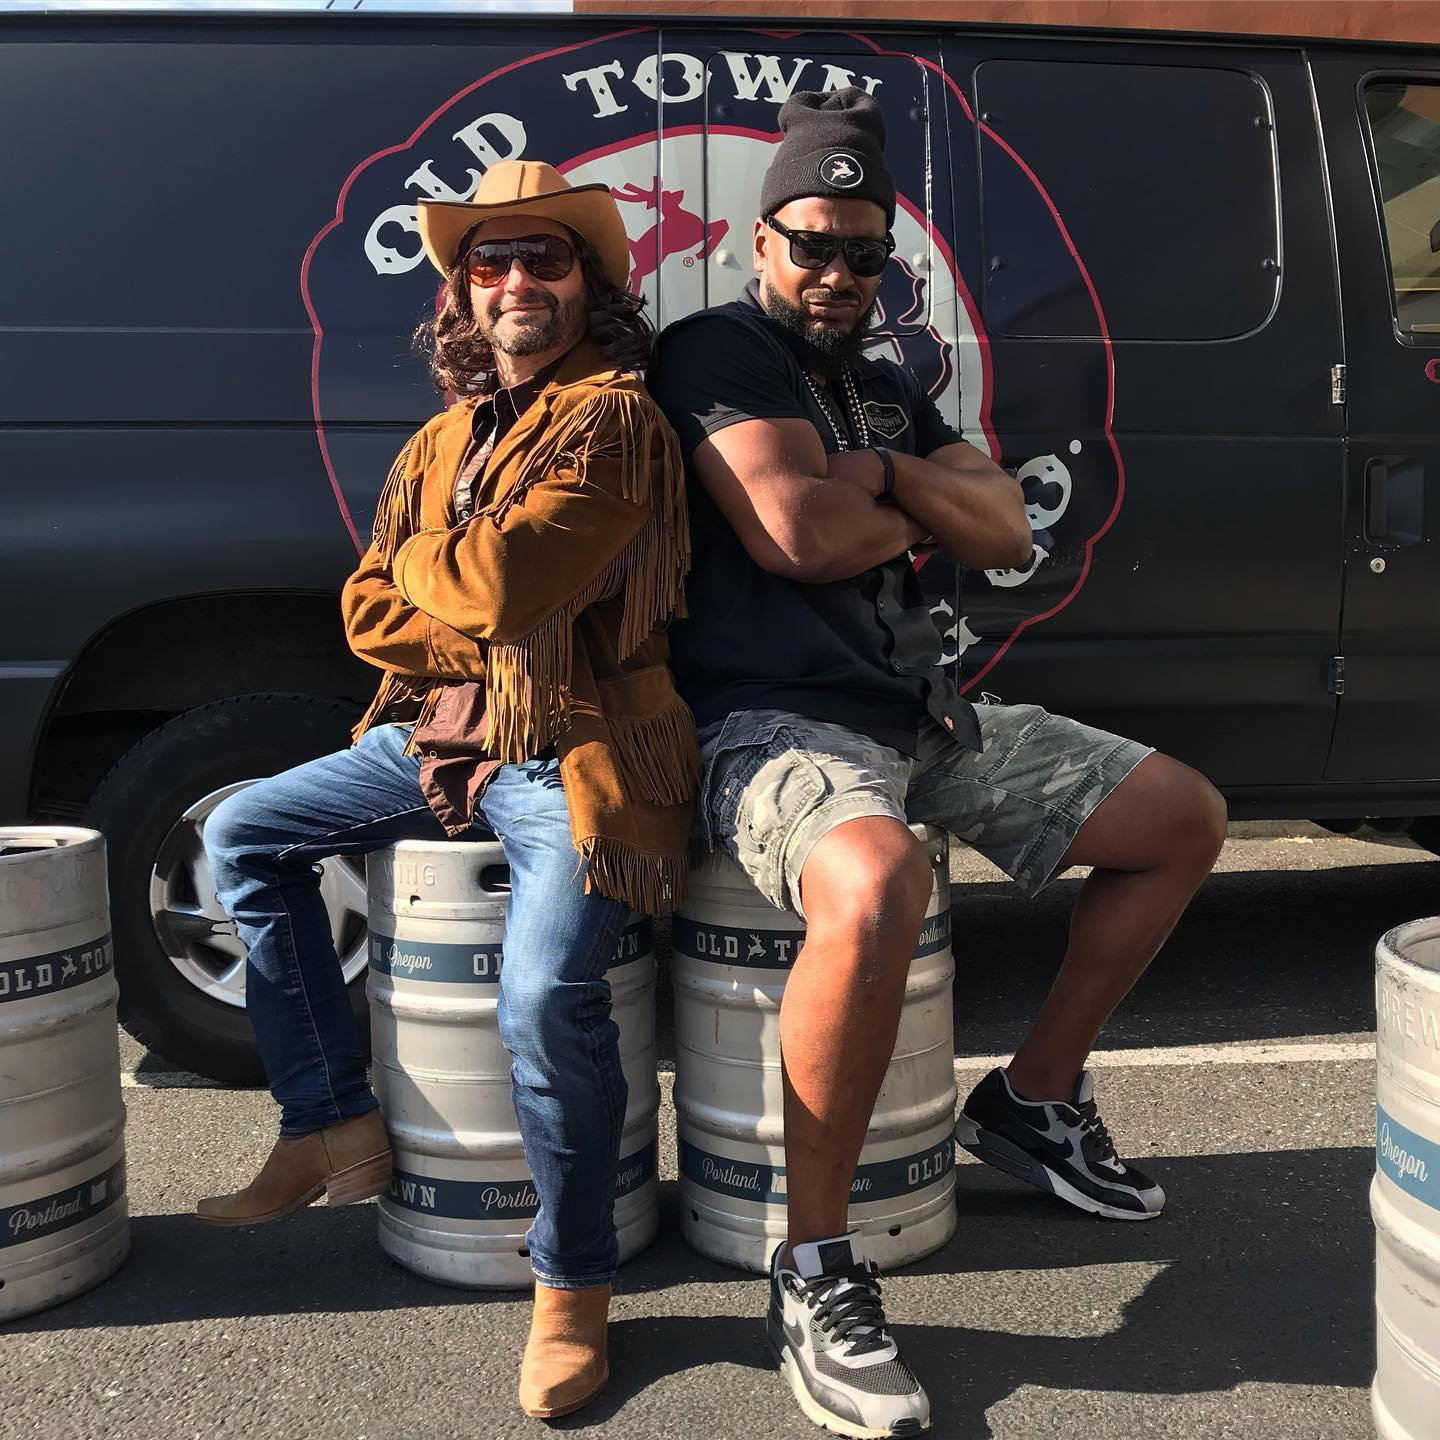 The making of Old Town Road - Beer Parody. (image courtesy of Old Town Brewing)